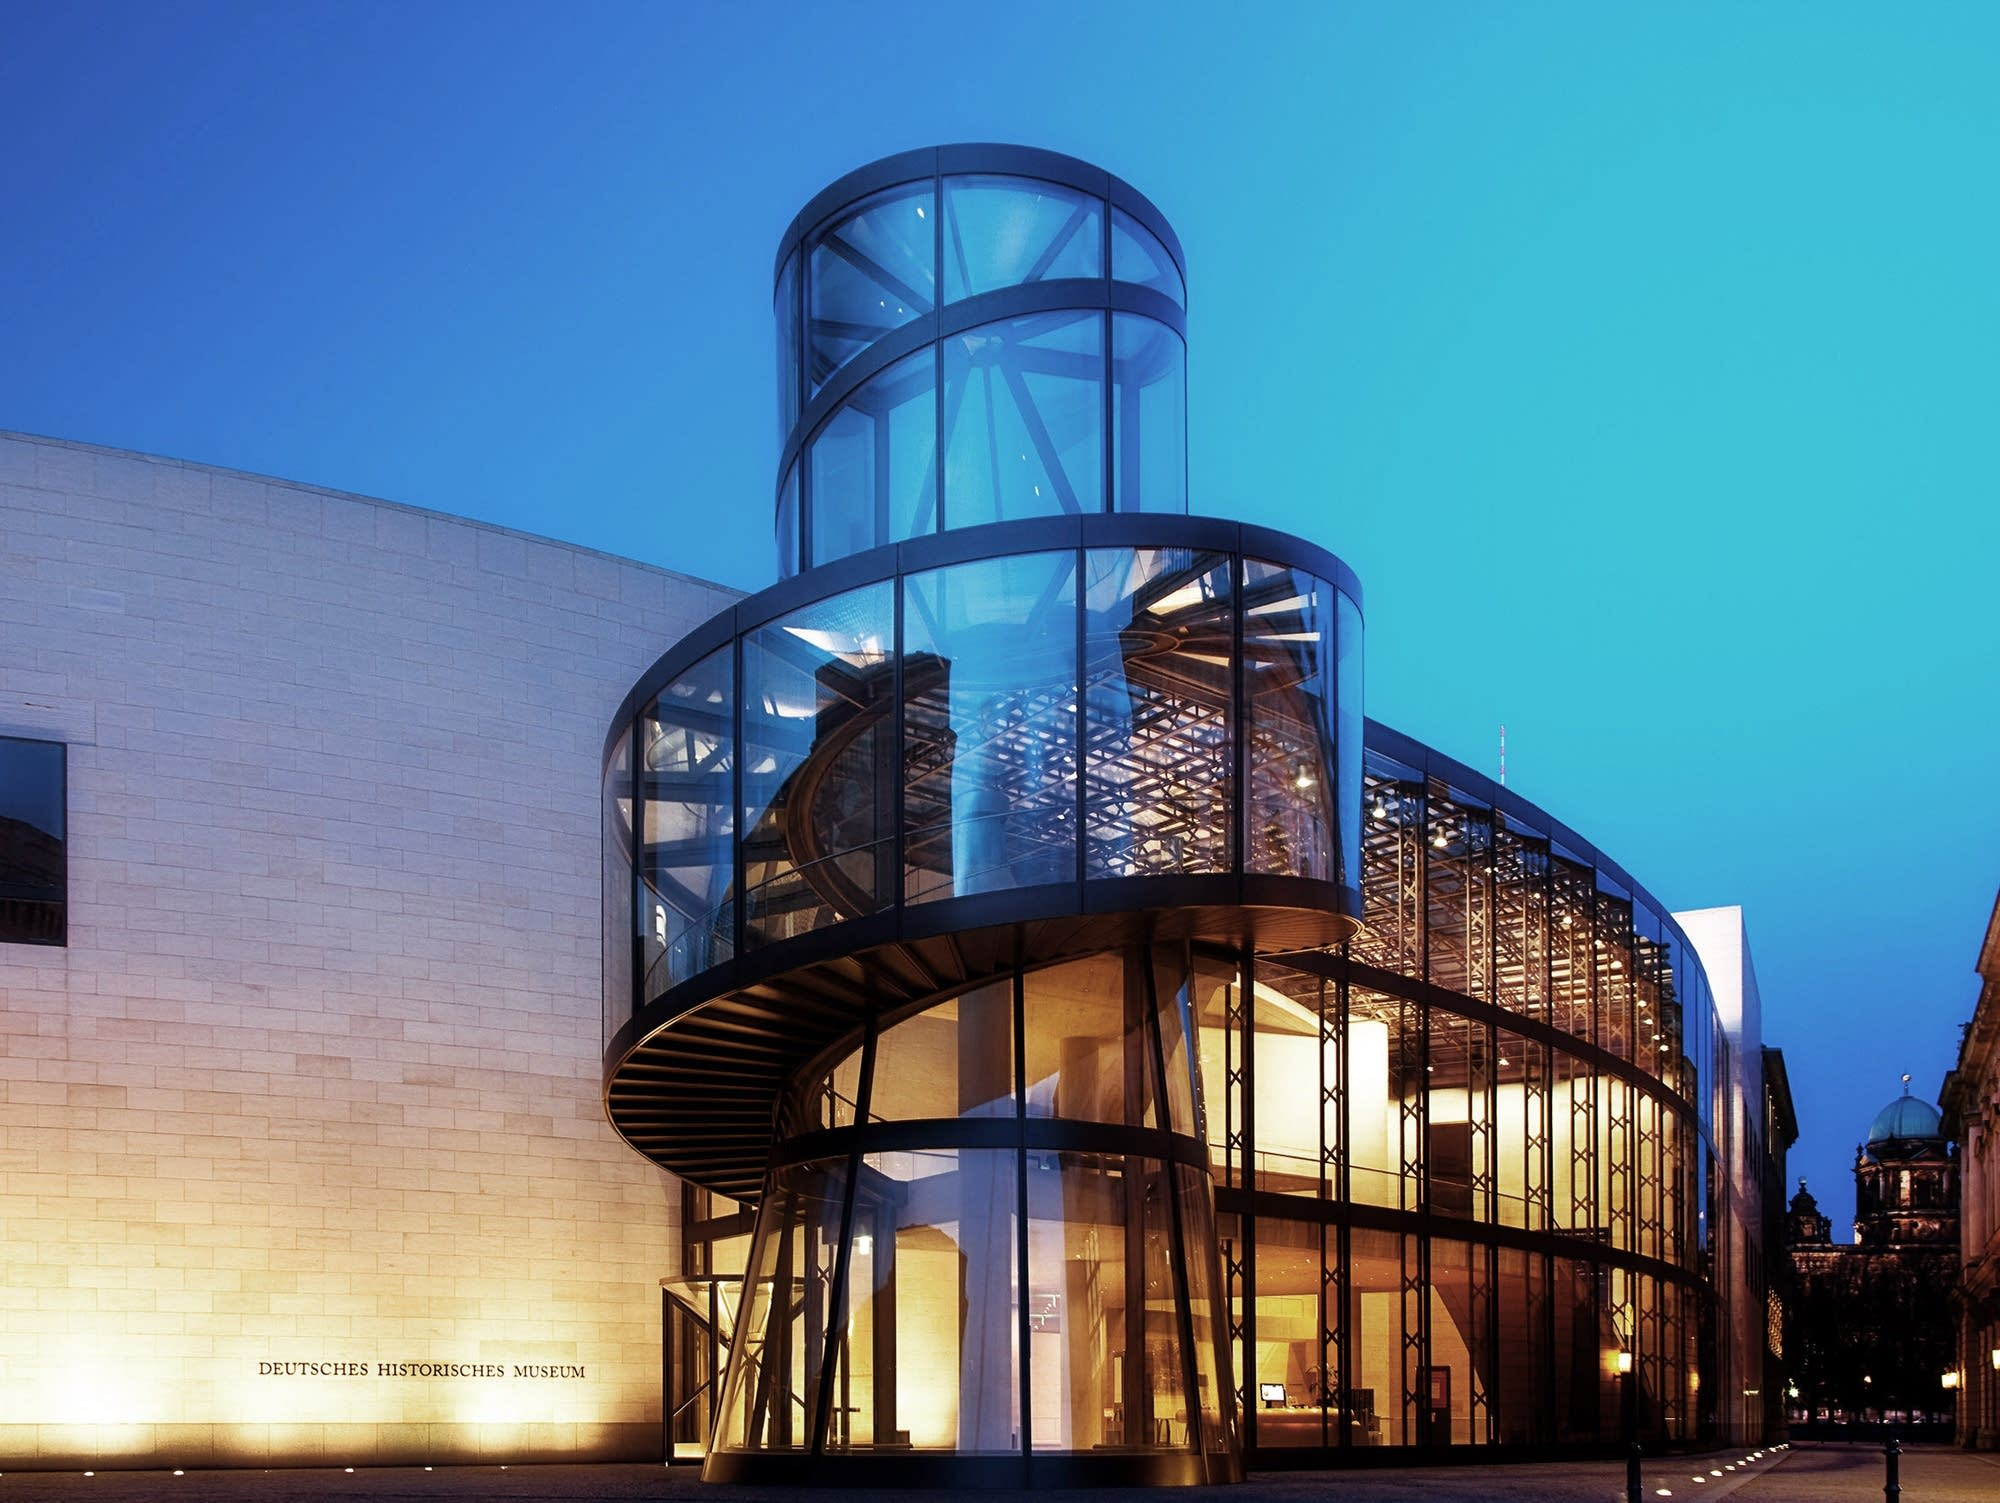 I. M. Pei designed the exhibition hall of the German Historical Museum.